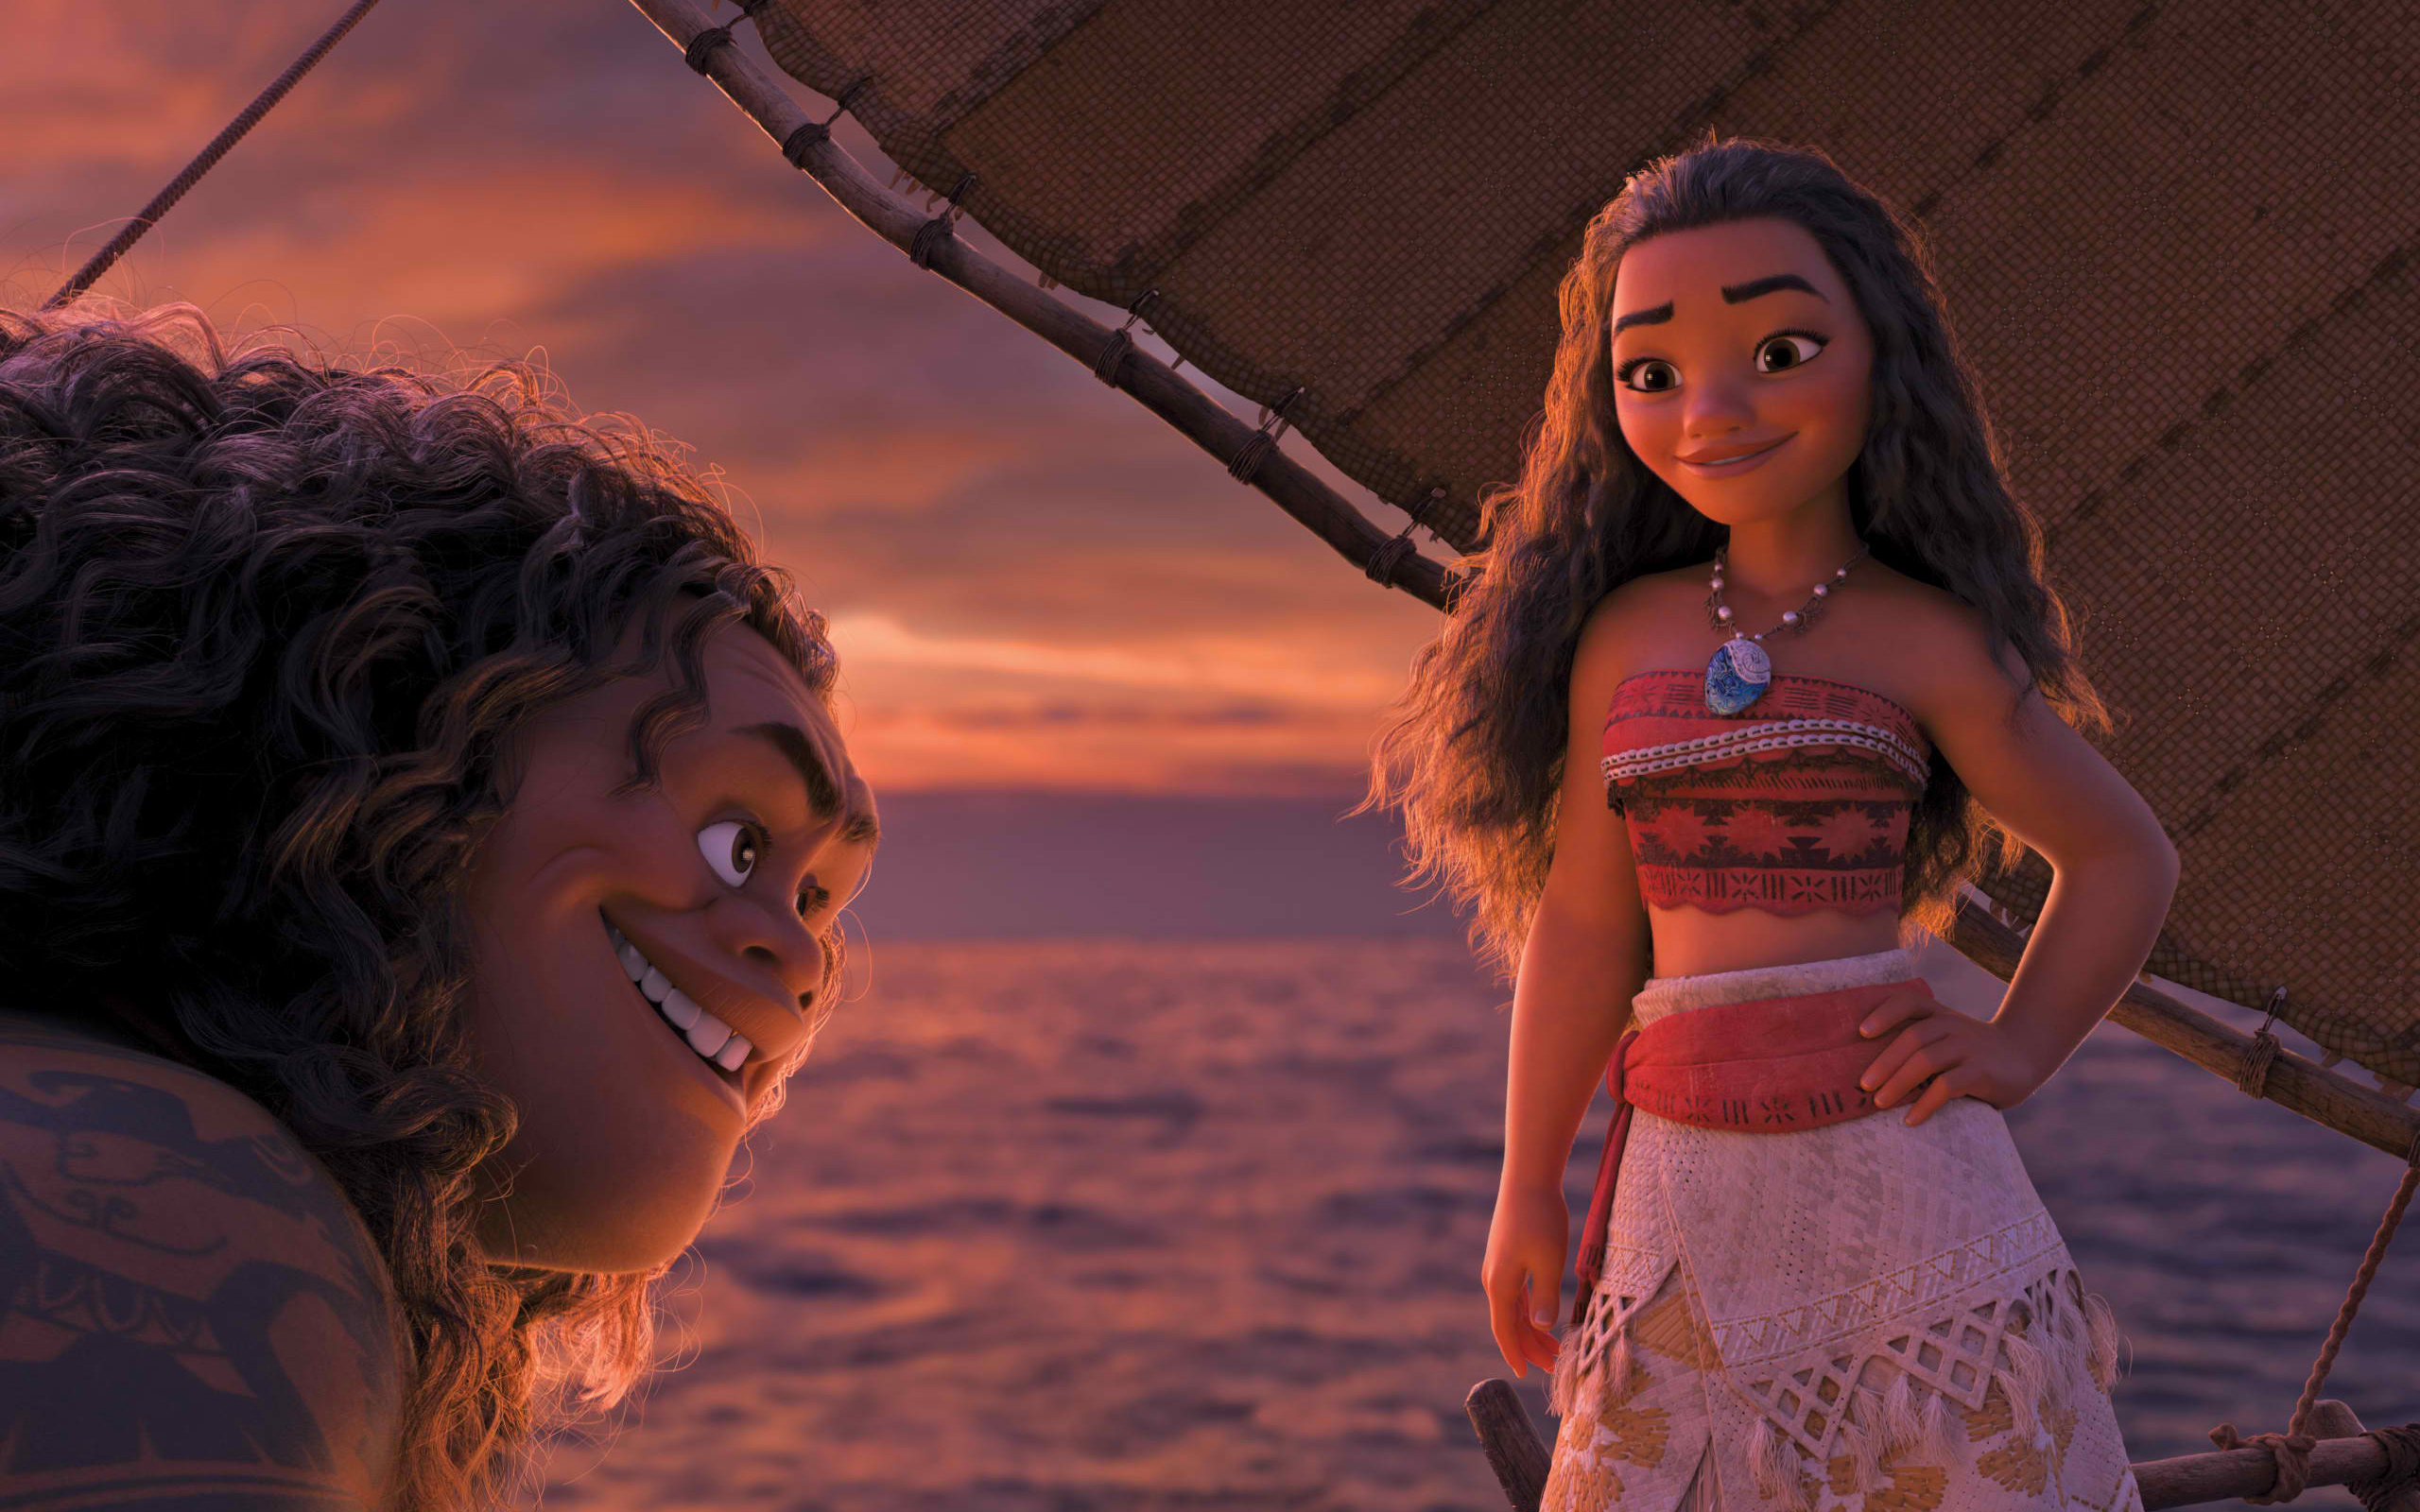 moana 4K wallpapers for your desktop or